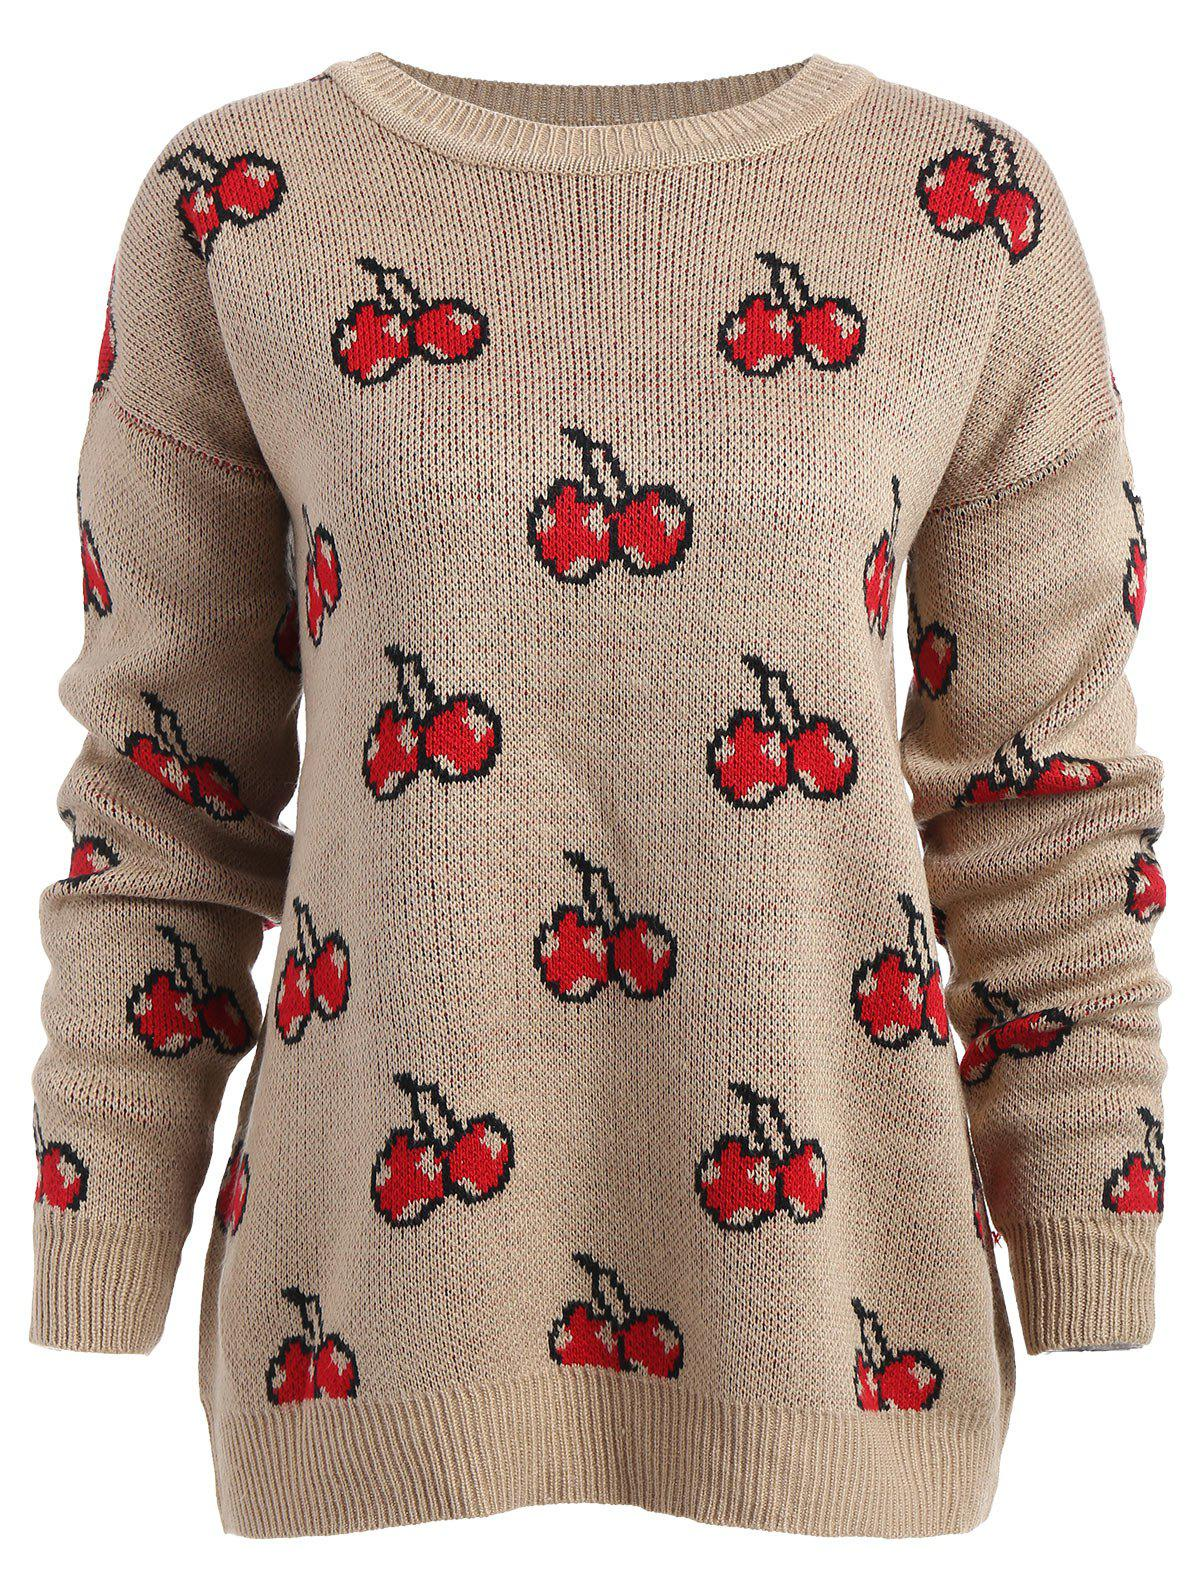 Plus Size Cherry Crew Neck Sweater - KHAKI ONE SIZE